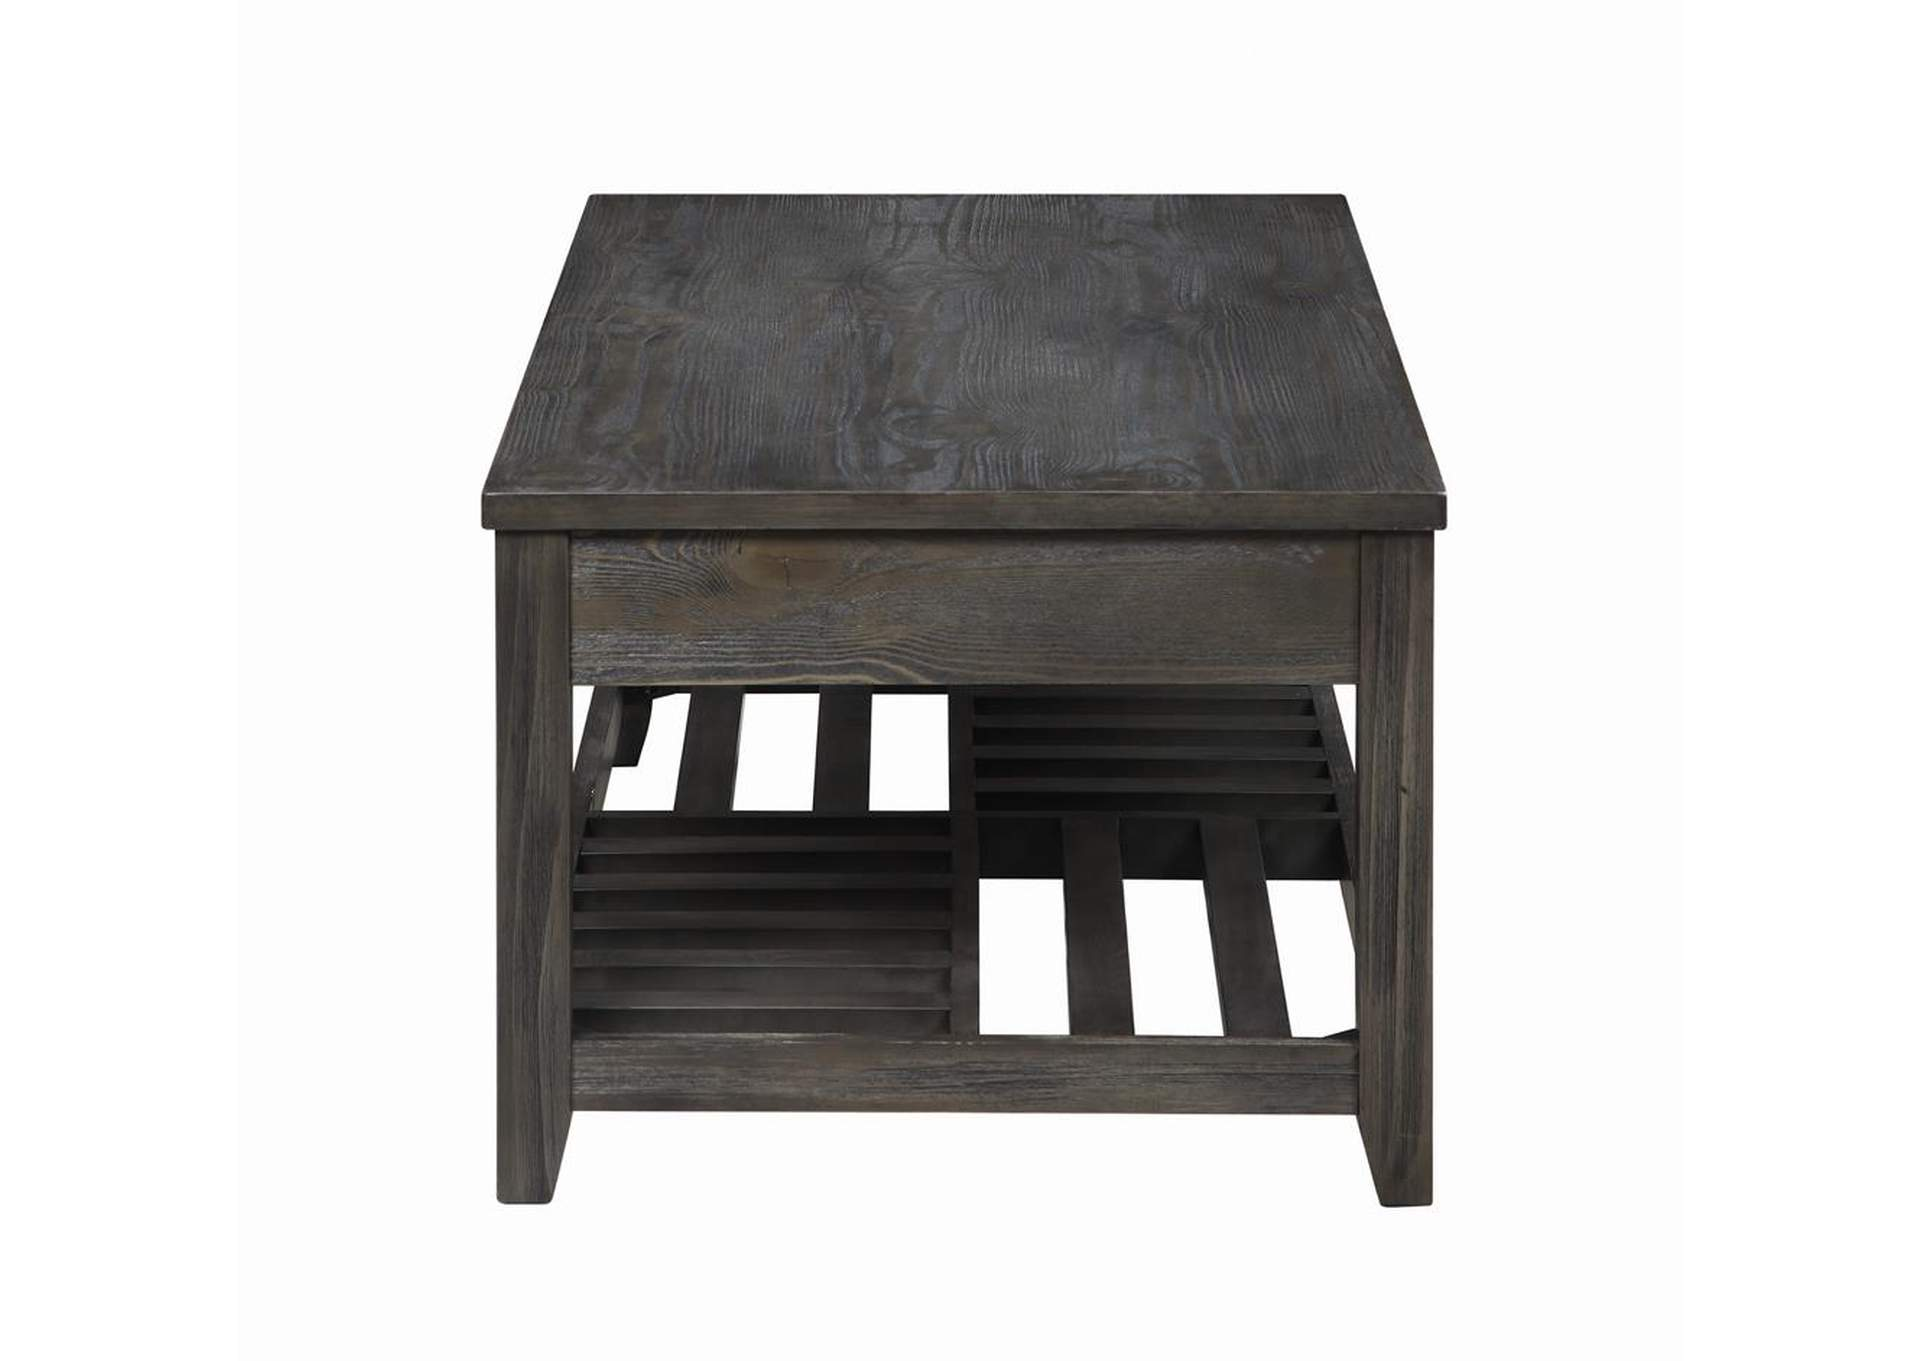 Fuscous Gray Rustic Grey Lift-Top Coffee Table,Coaster Furniture